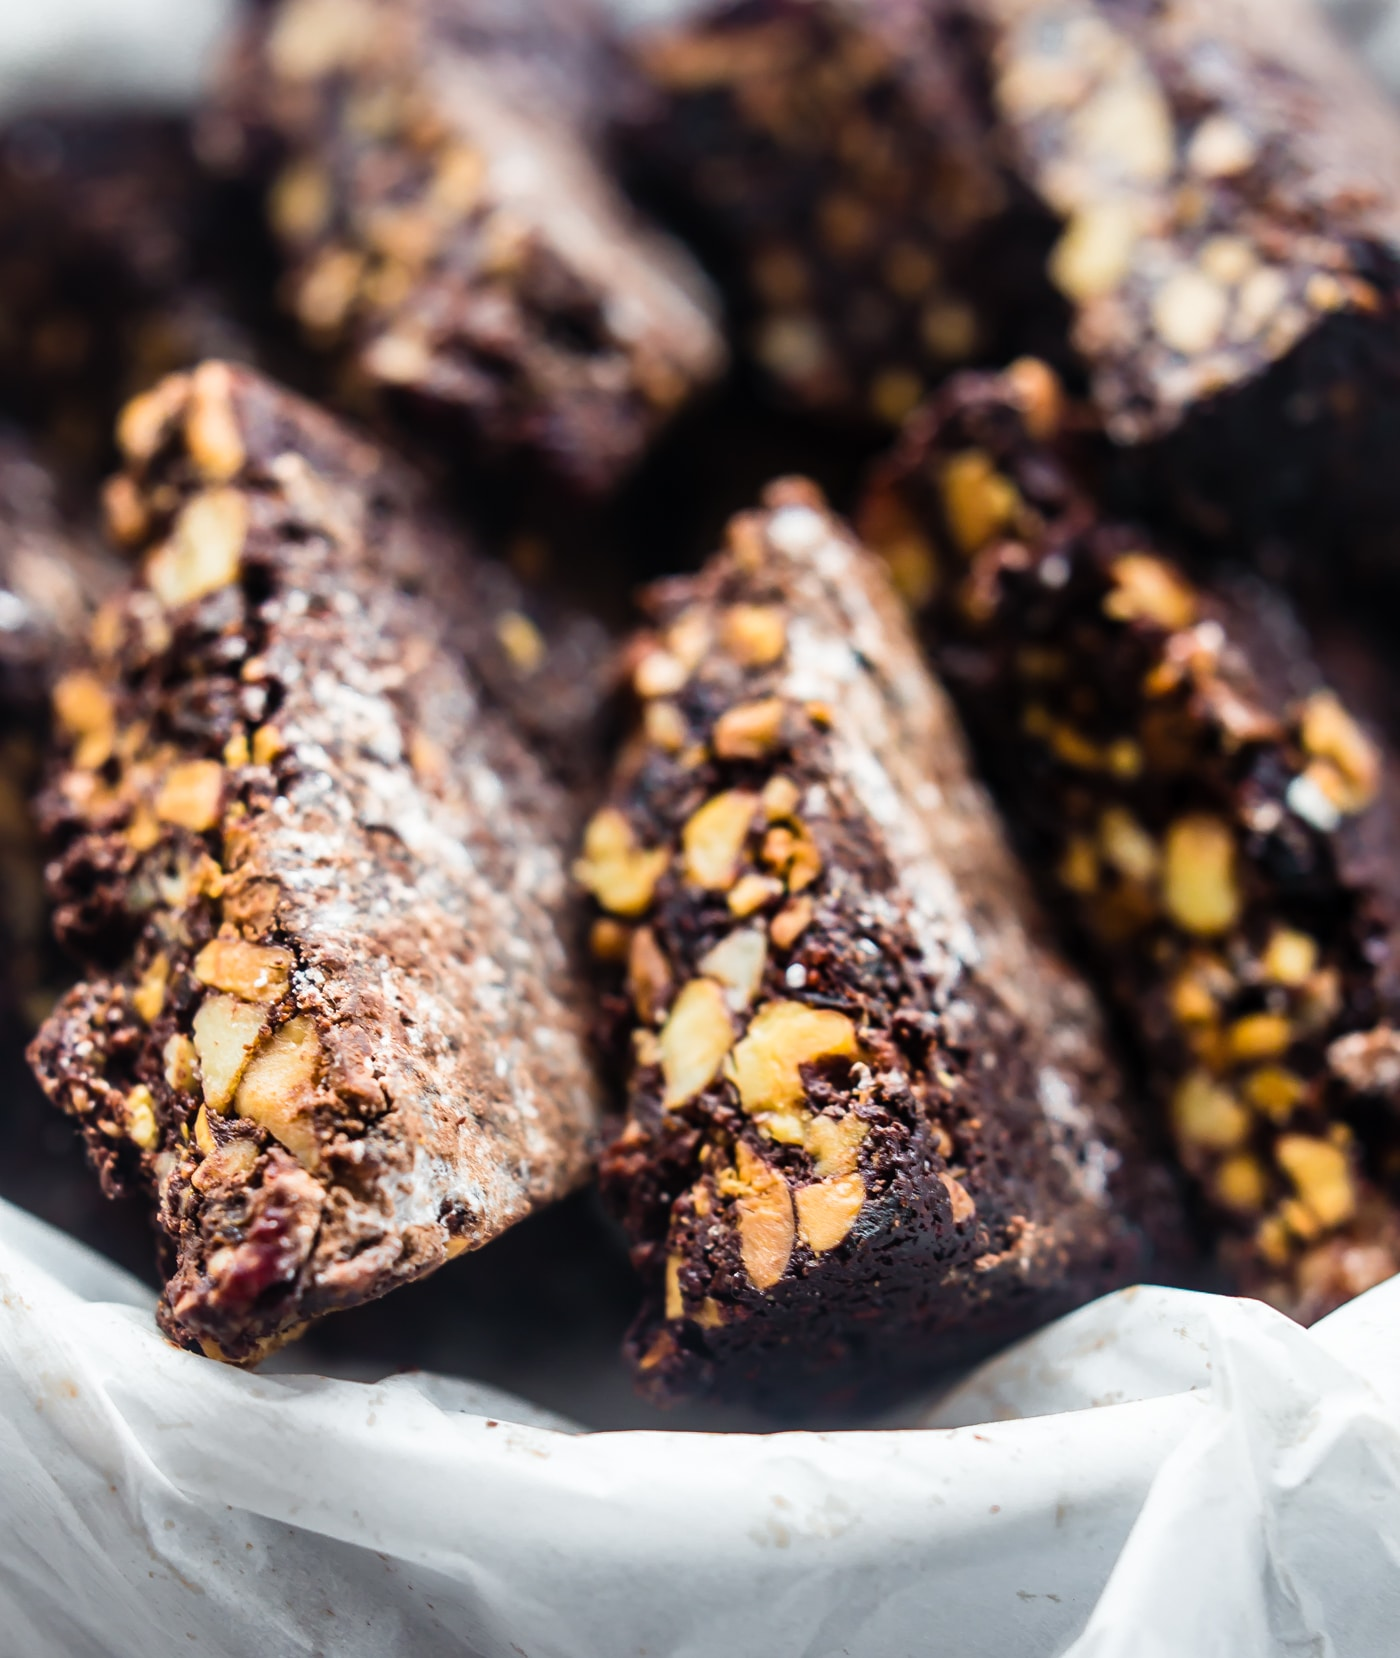 slices of Panforte (chocolate Christmas cake)